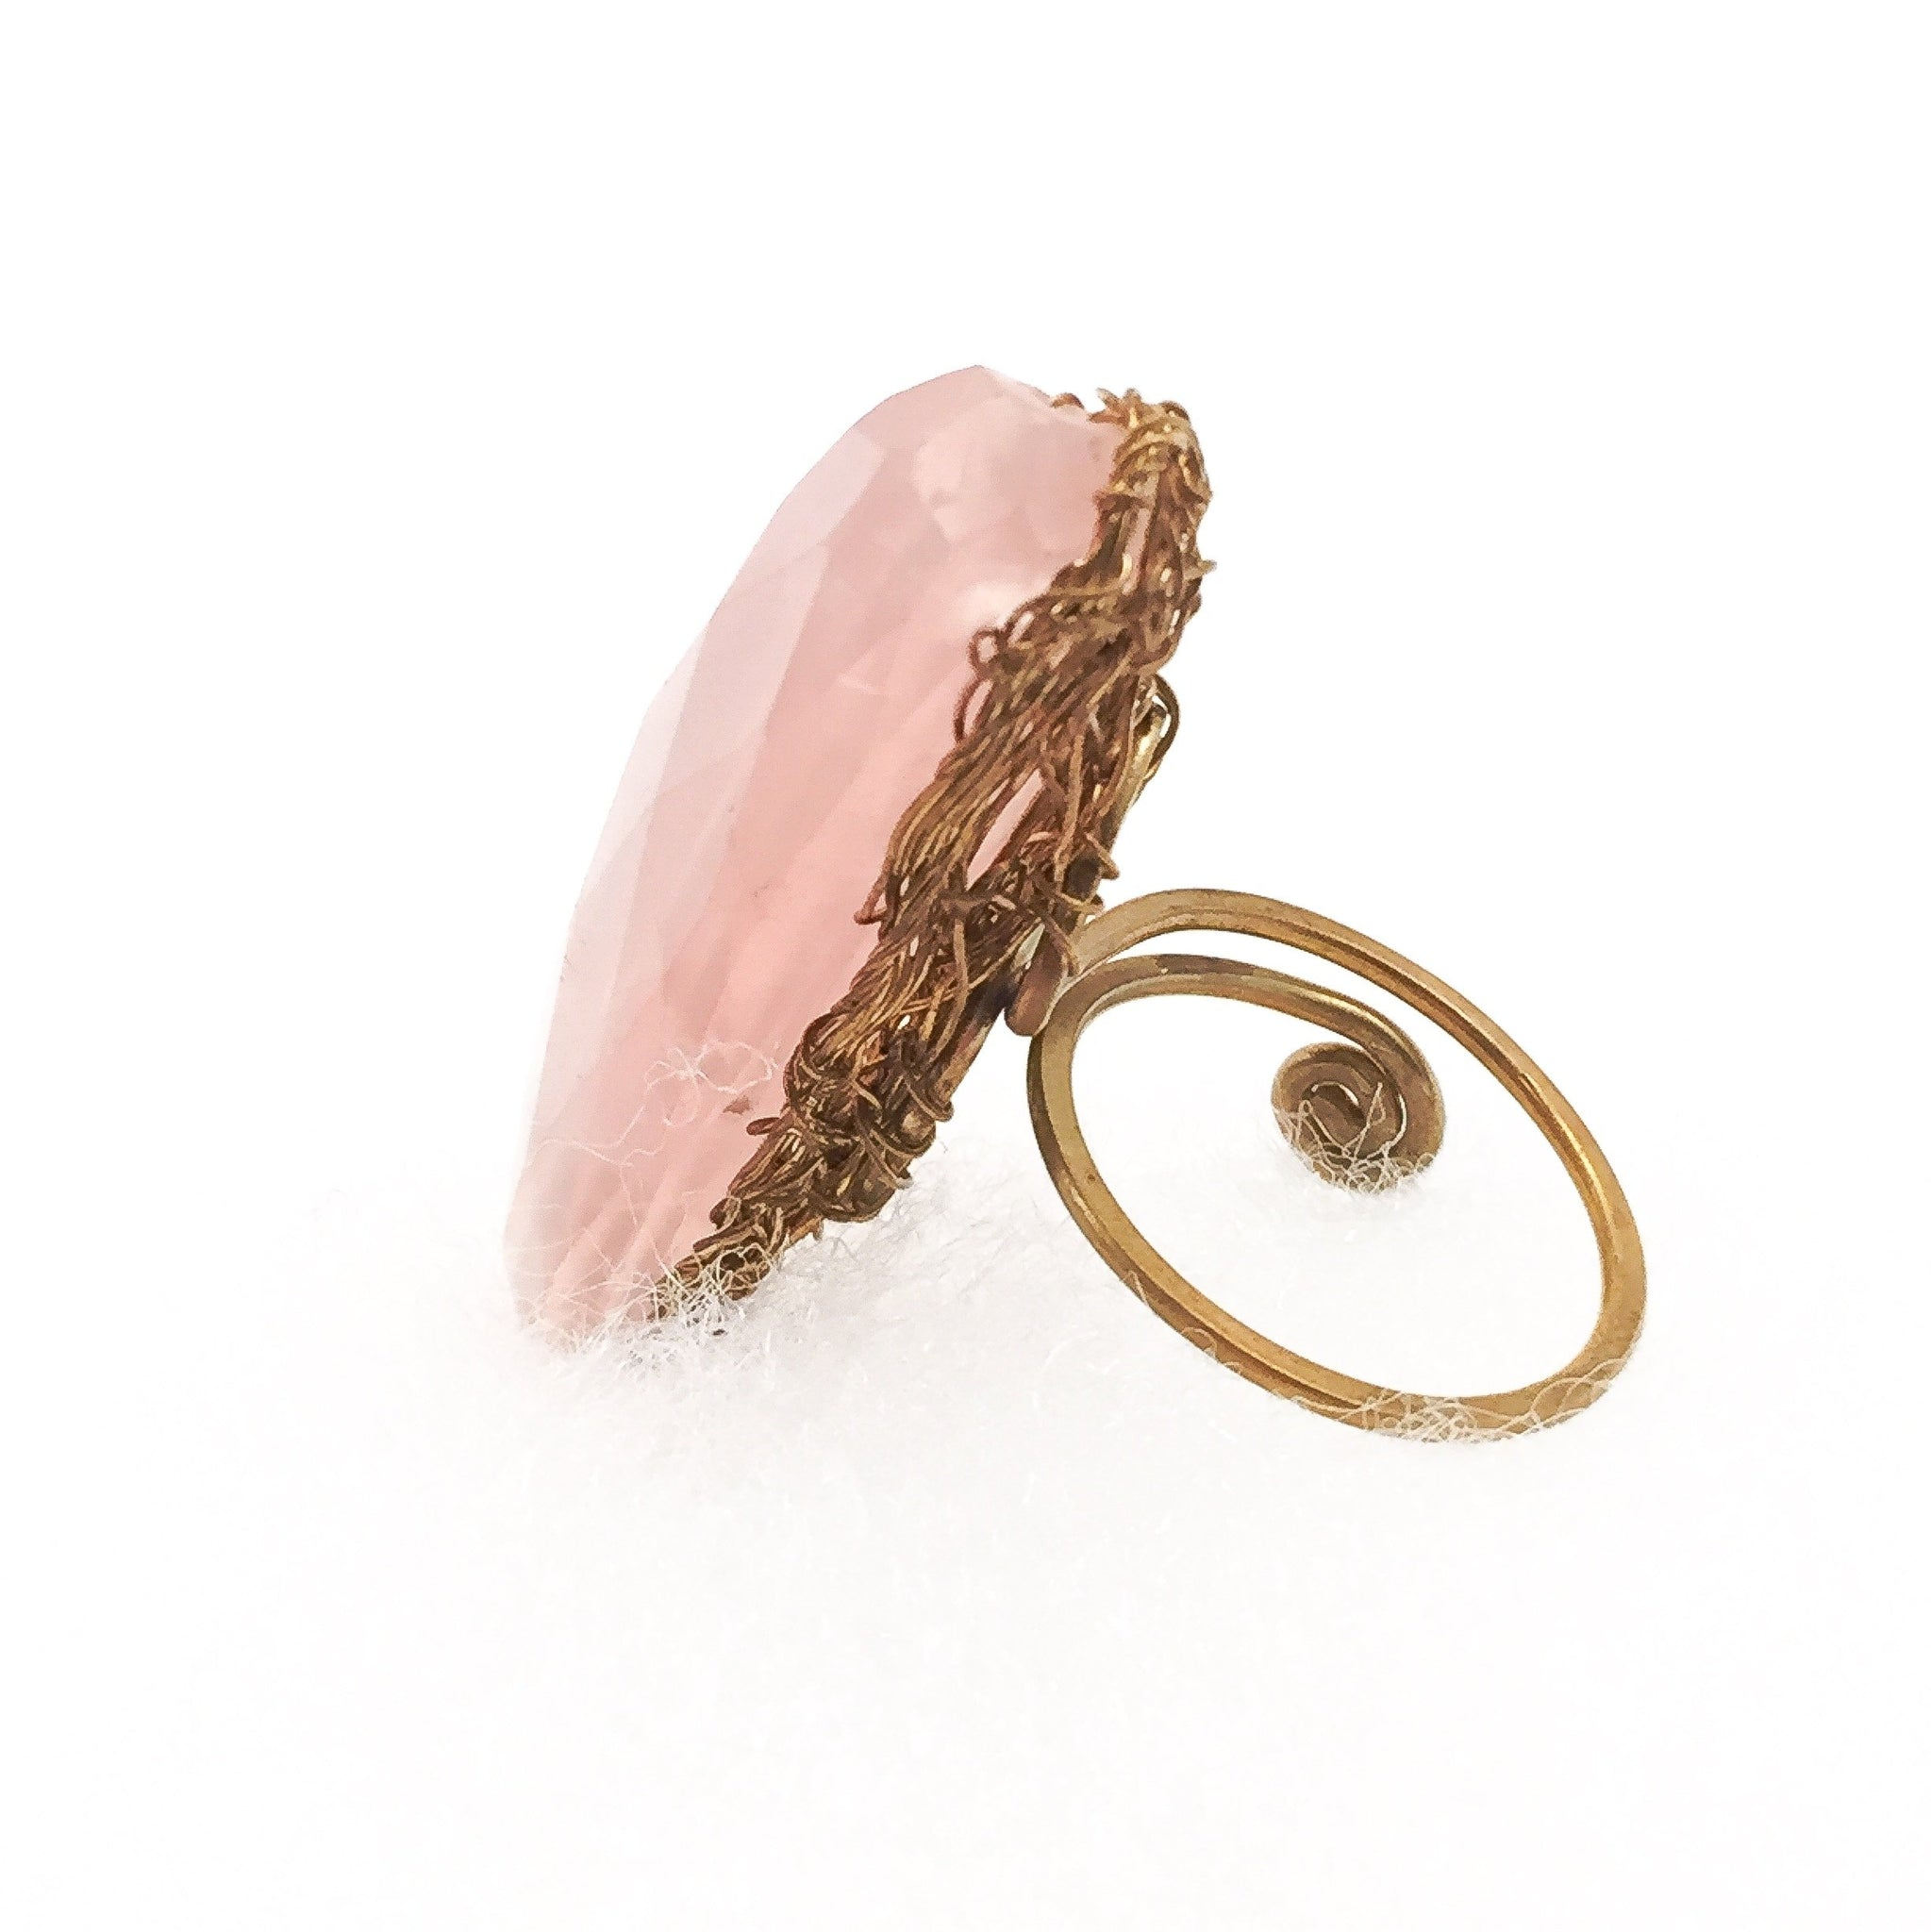 valo antik ring from product rose koru and rings silver sold nordlings quartz